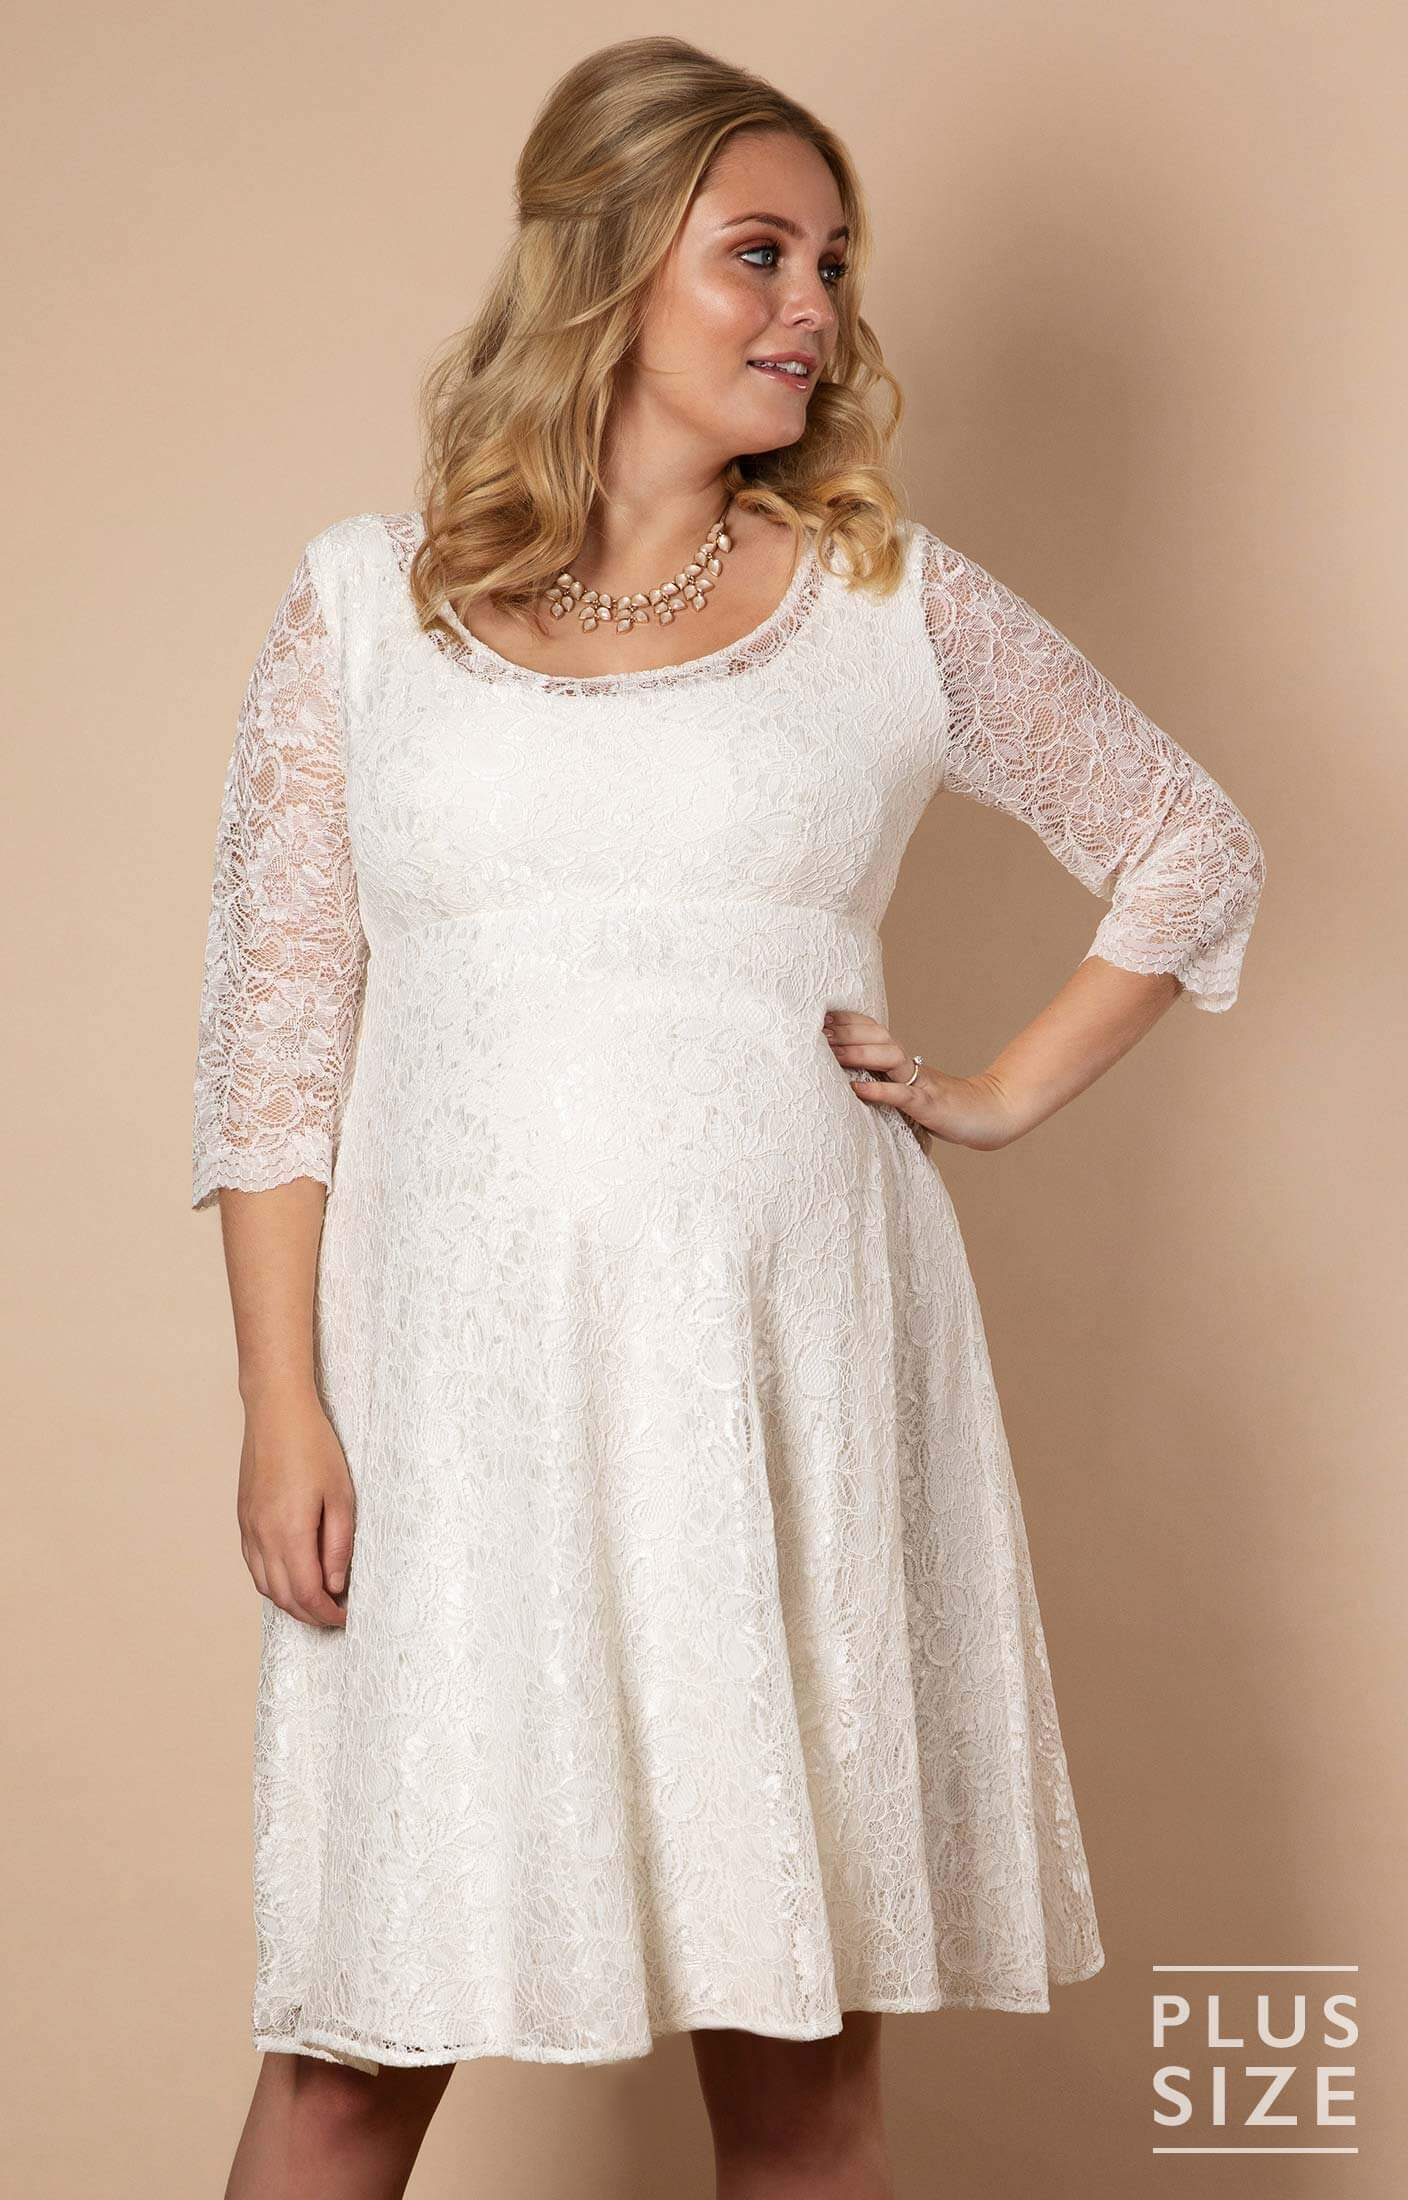 Freya Dress Short Plus Size Maternity Wedding Dress Ivory - Maternity  Wedding Dresses, Evening Wear and Party Clothes by Tiffany Rose